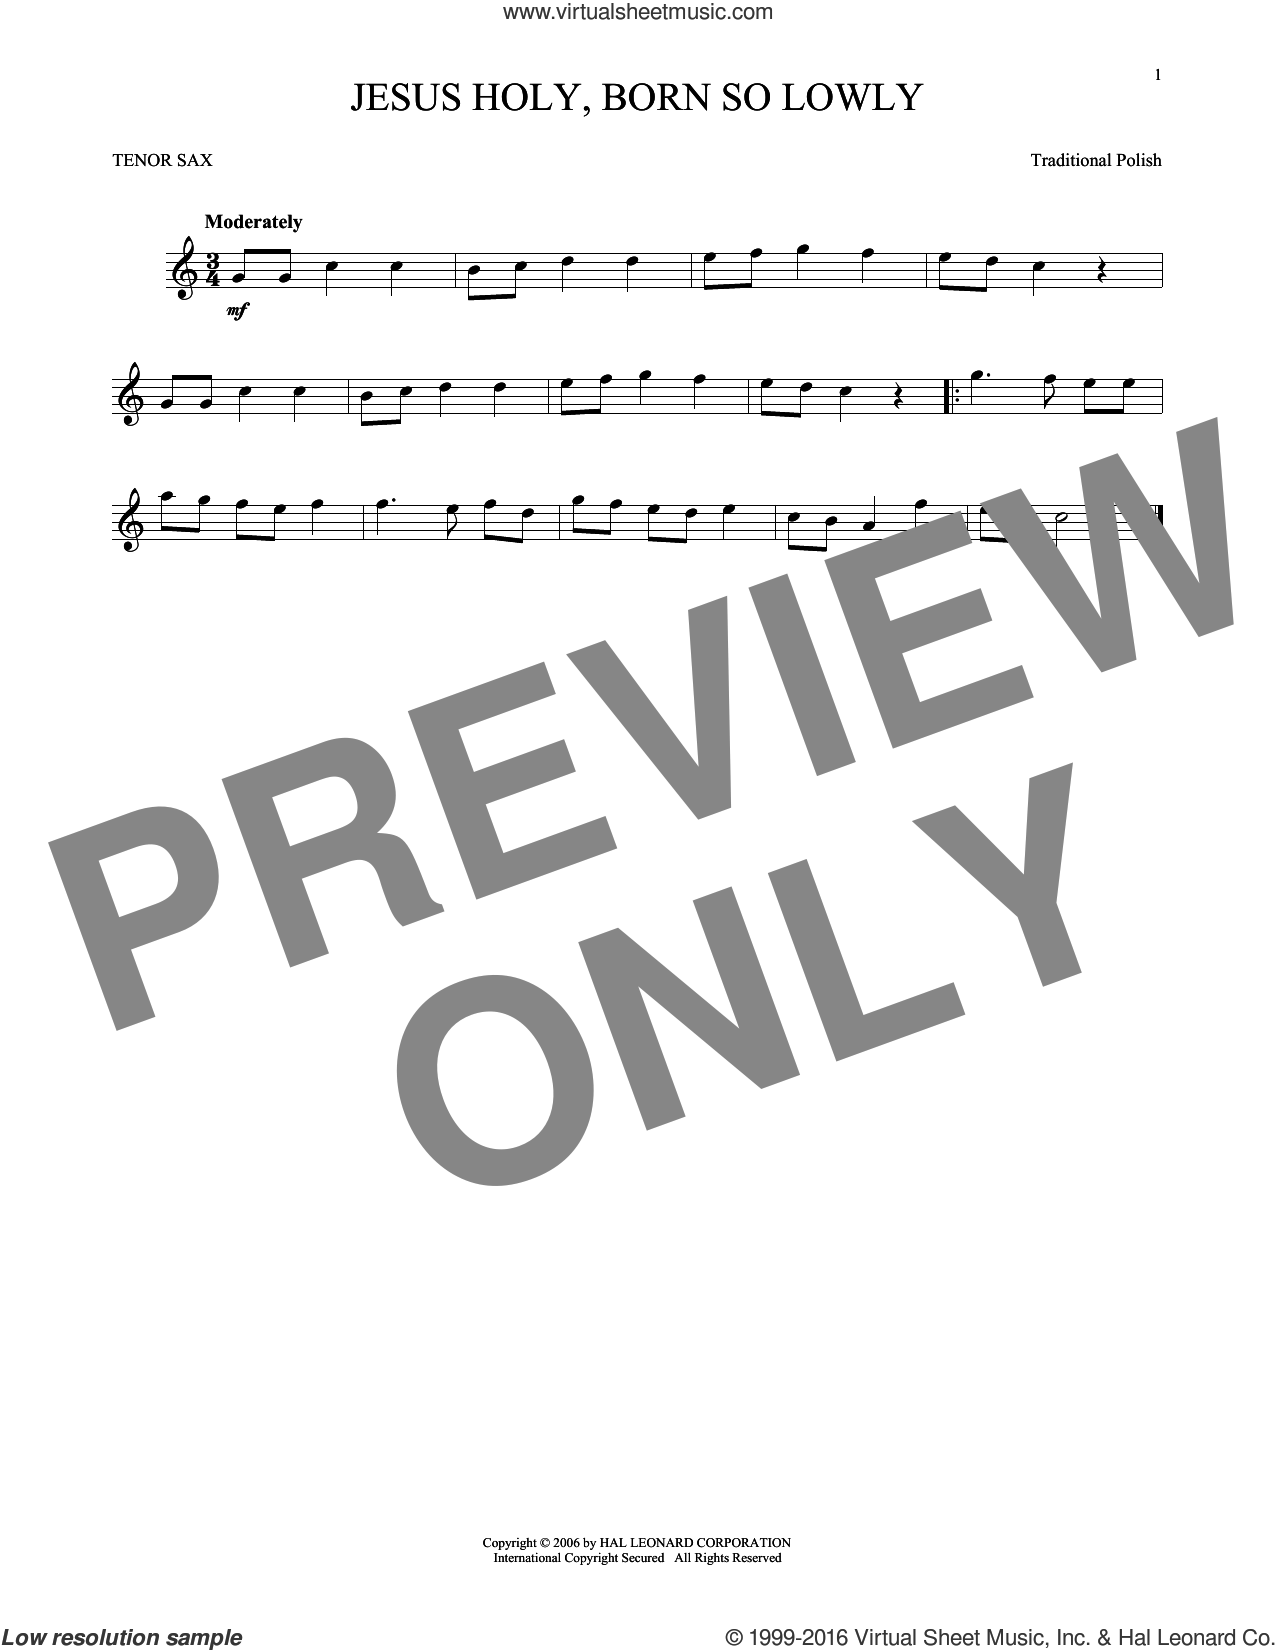 Jesus Holy, Born So Lowly sheet music for tenor saxophone solo, intermediate skill level